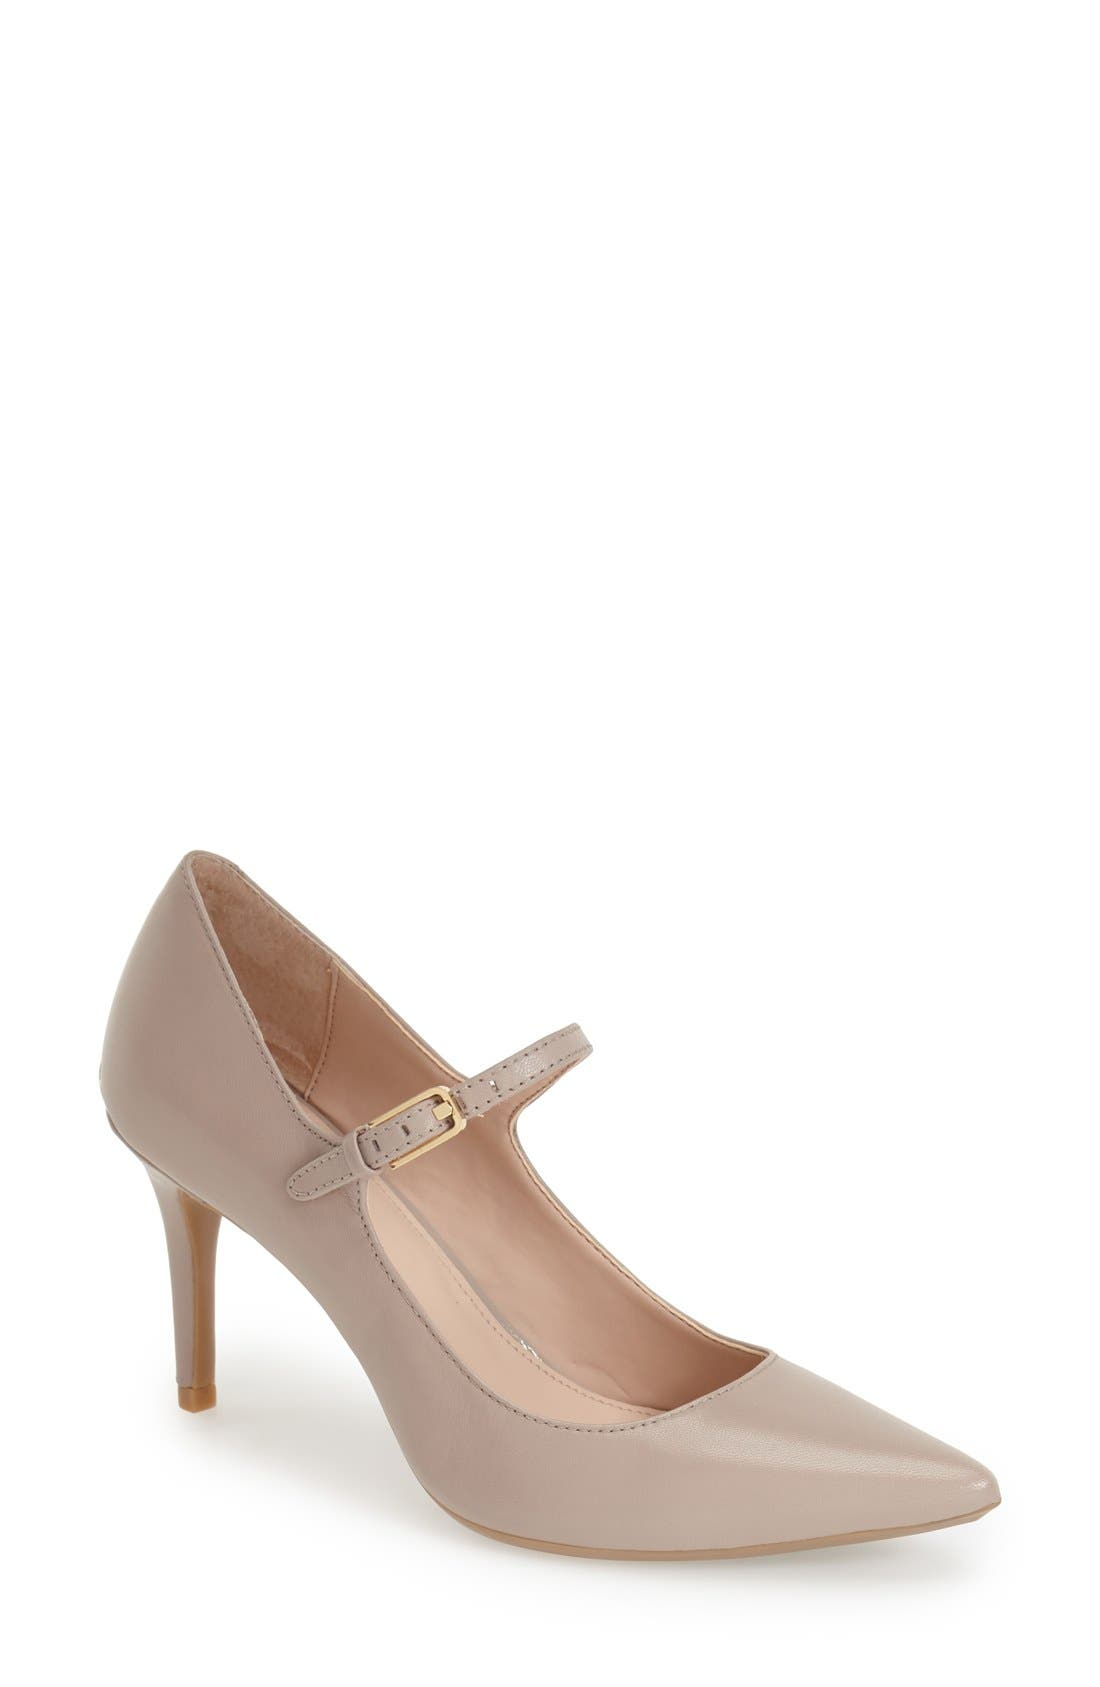 Alternate Image 1 Selected - Calvin Klein 'Genavee' Pointy Toe Pump (Women)